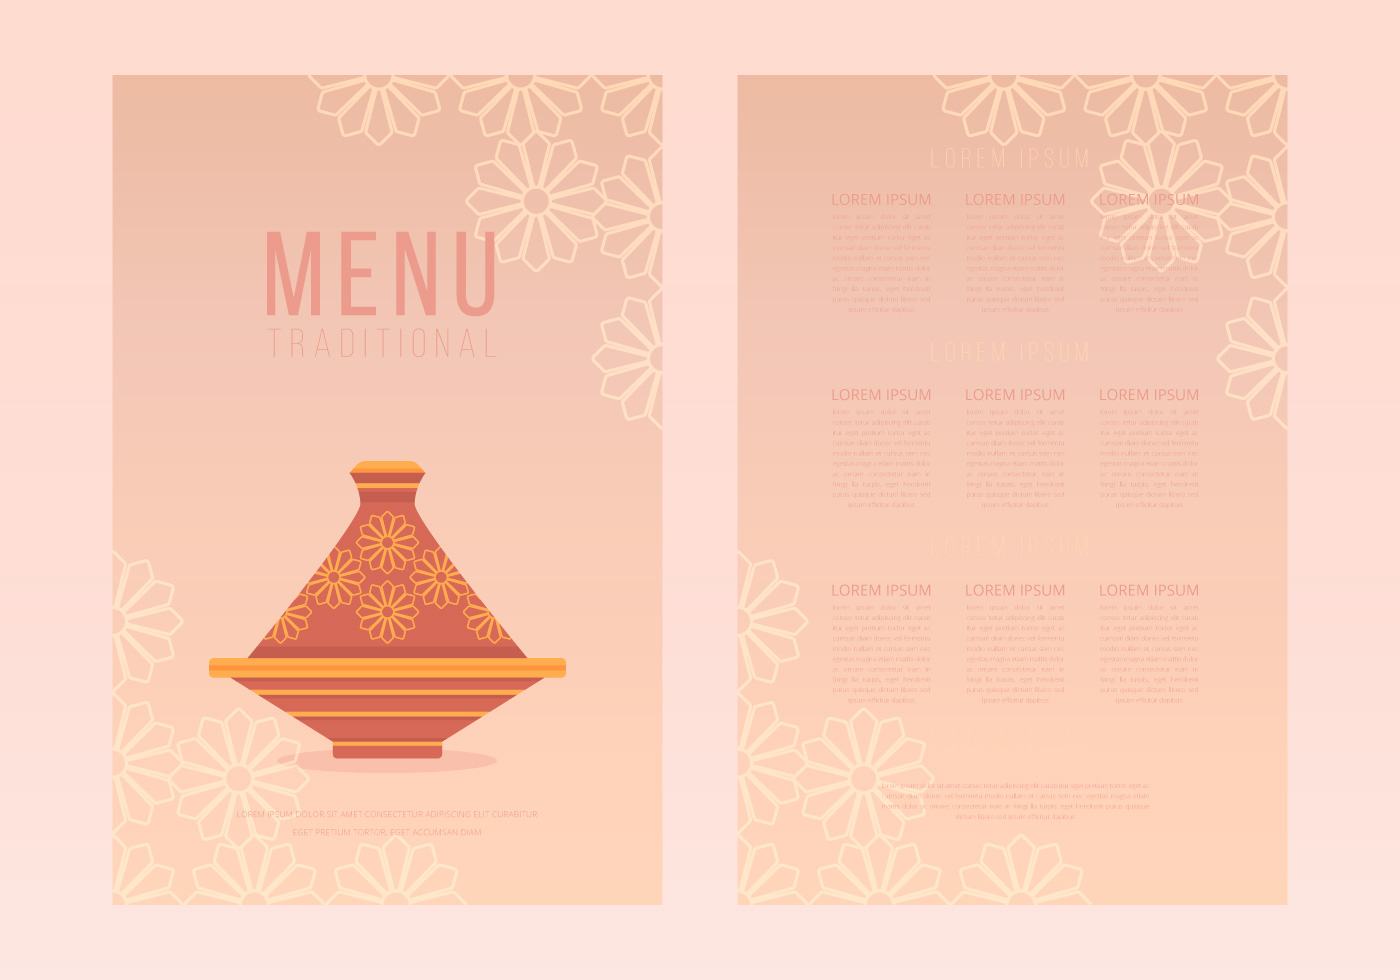 Tajine moroccan traditional food menu templates download for Menue templates